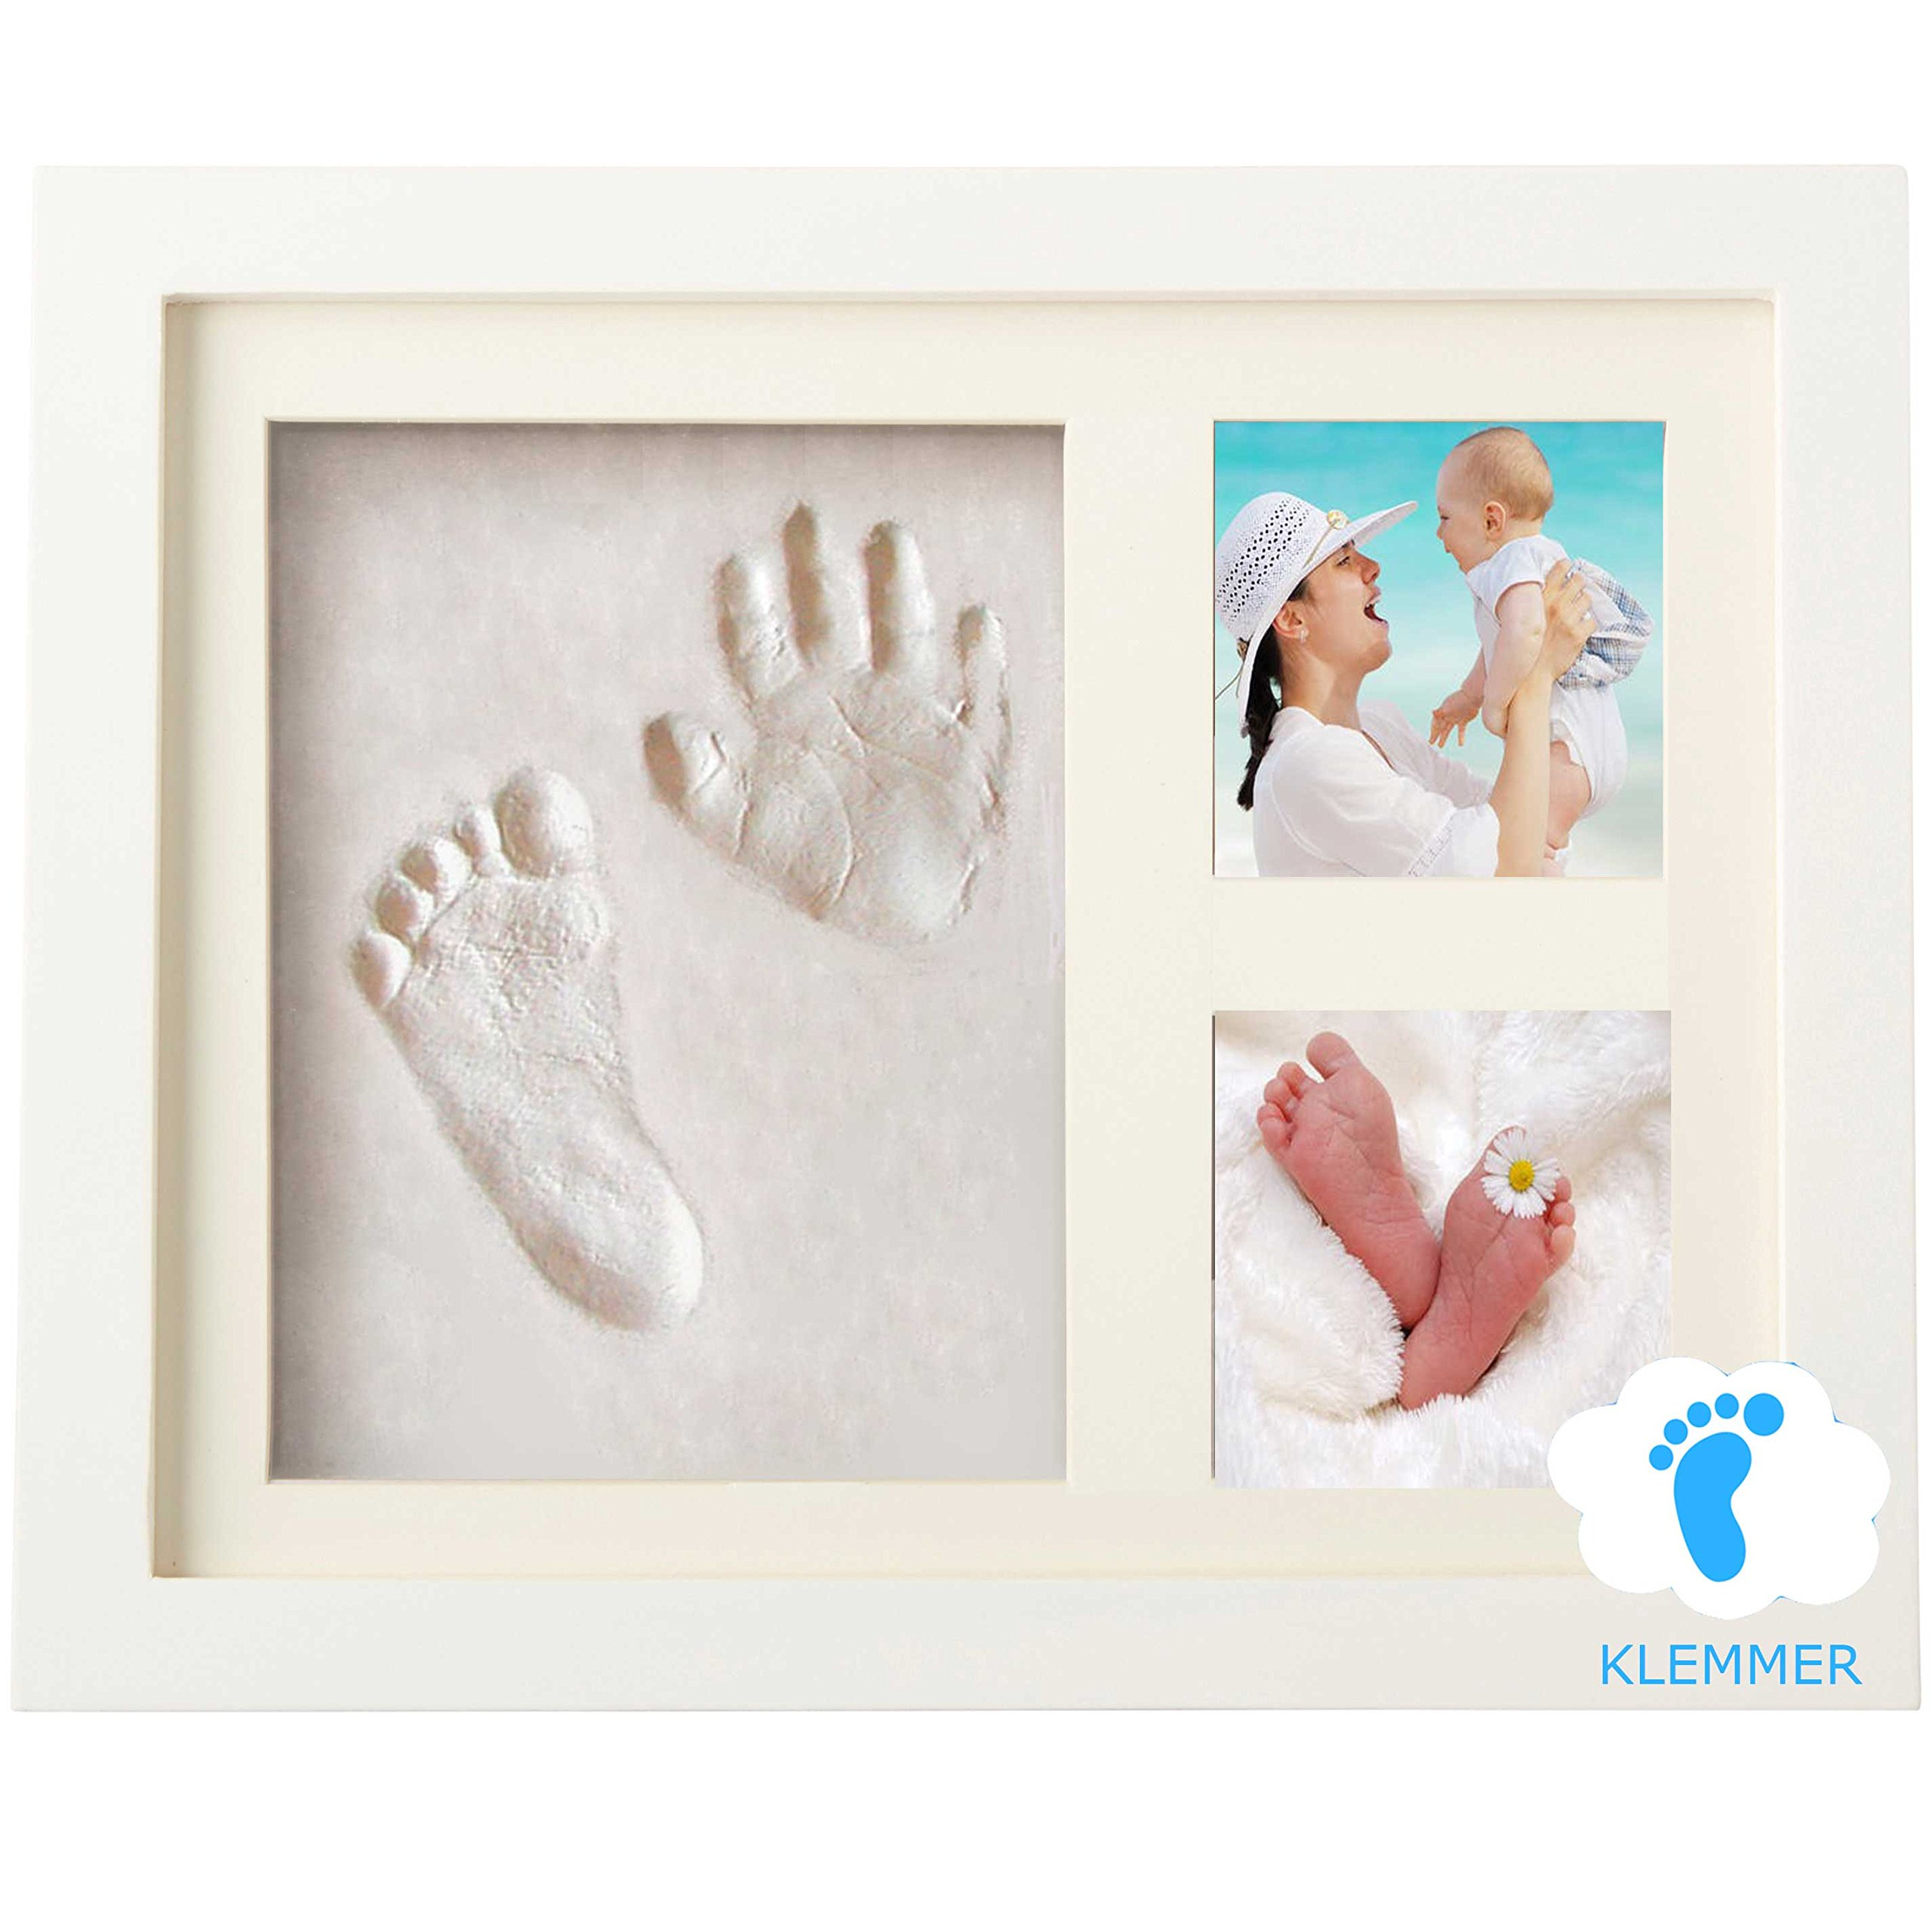 Baby Handprint And Footprint Kit by Klemmer, SAFE AND EASY TO USE! NON TOXIC CLAY! Perfect for Baby Shower, Newborn Baby Boy and Baby Girl, Keepsake Box And Photo Frame